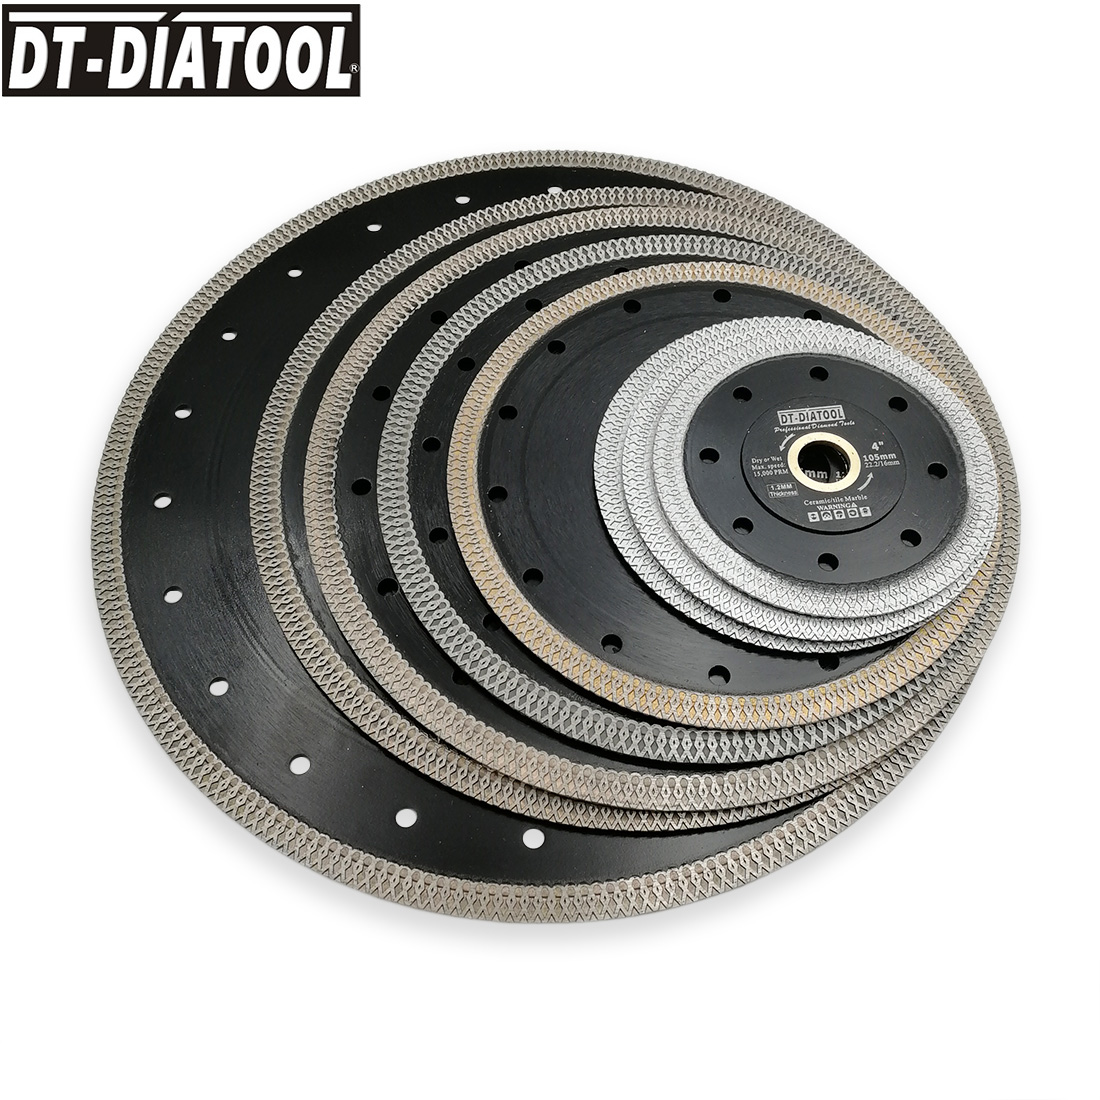 DT-DIATOOL 2pcs/pk Premium Diamond Wheel Cutting Disc X Mesh Turbo Rim Segment Saw Blades Marble Dia 4